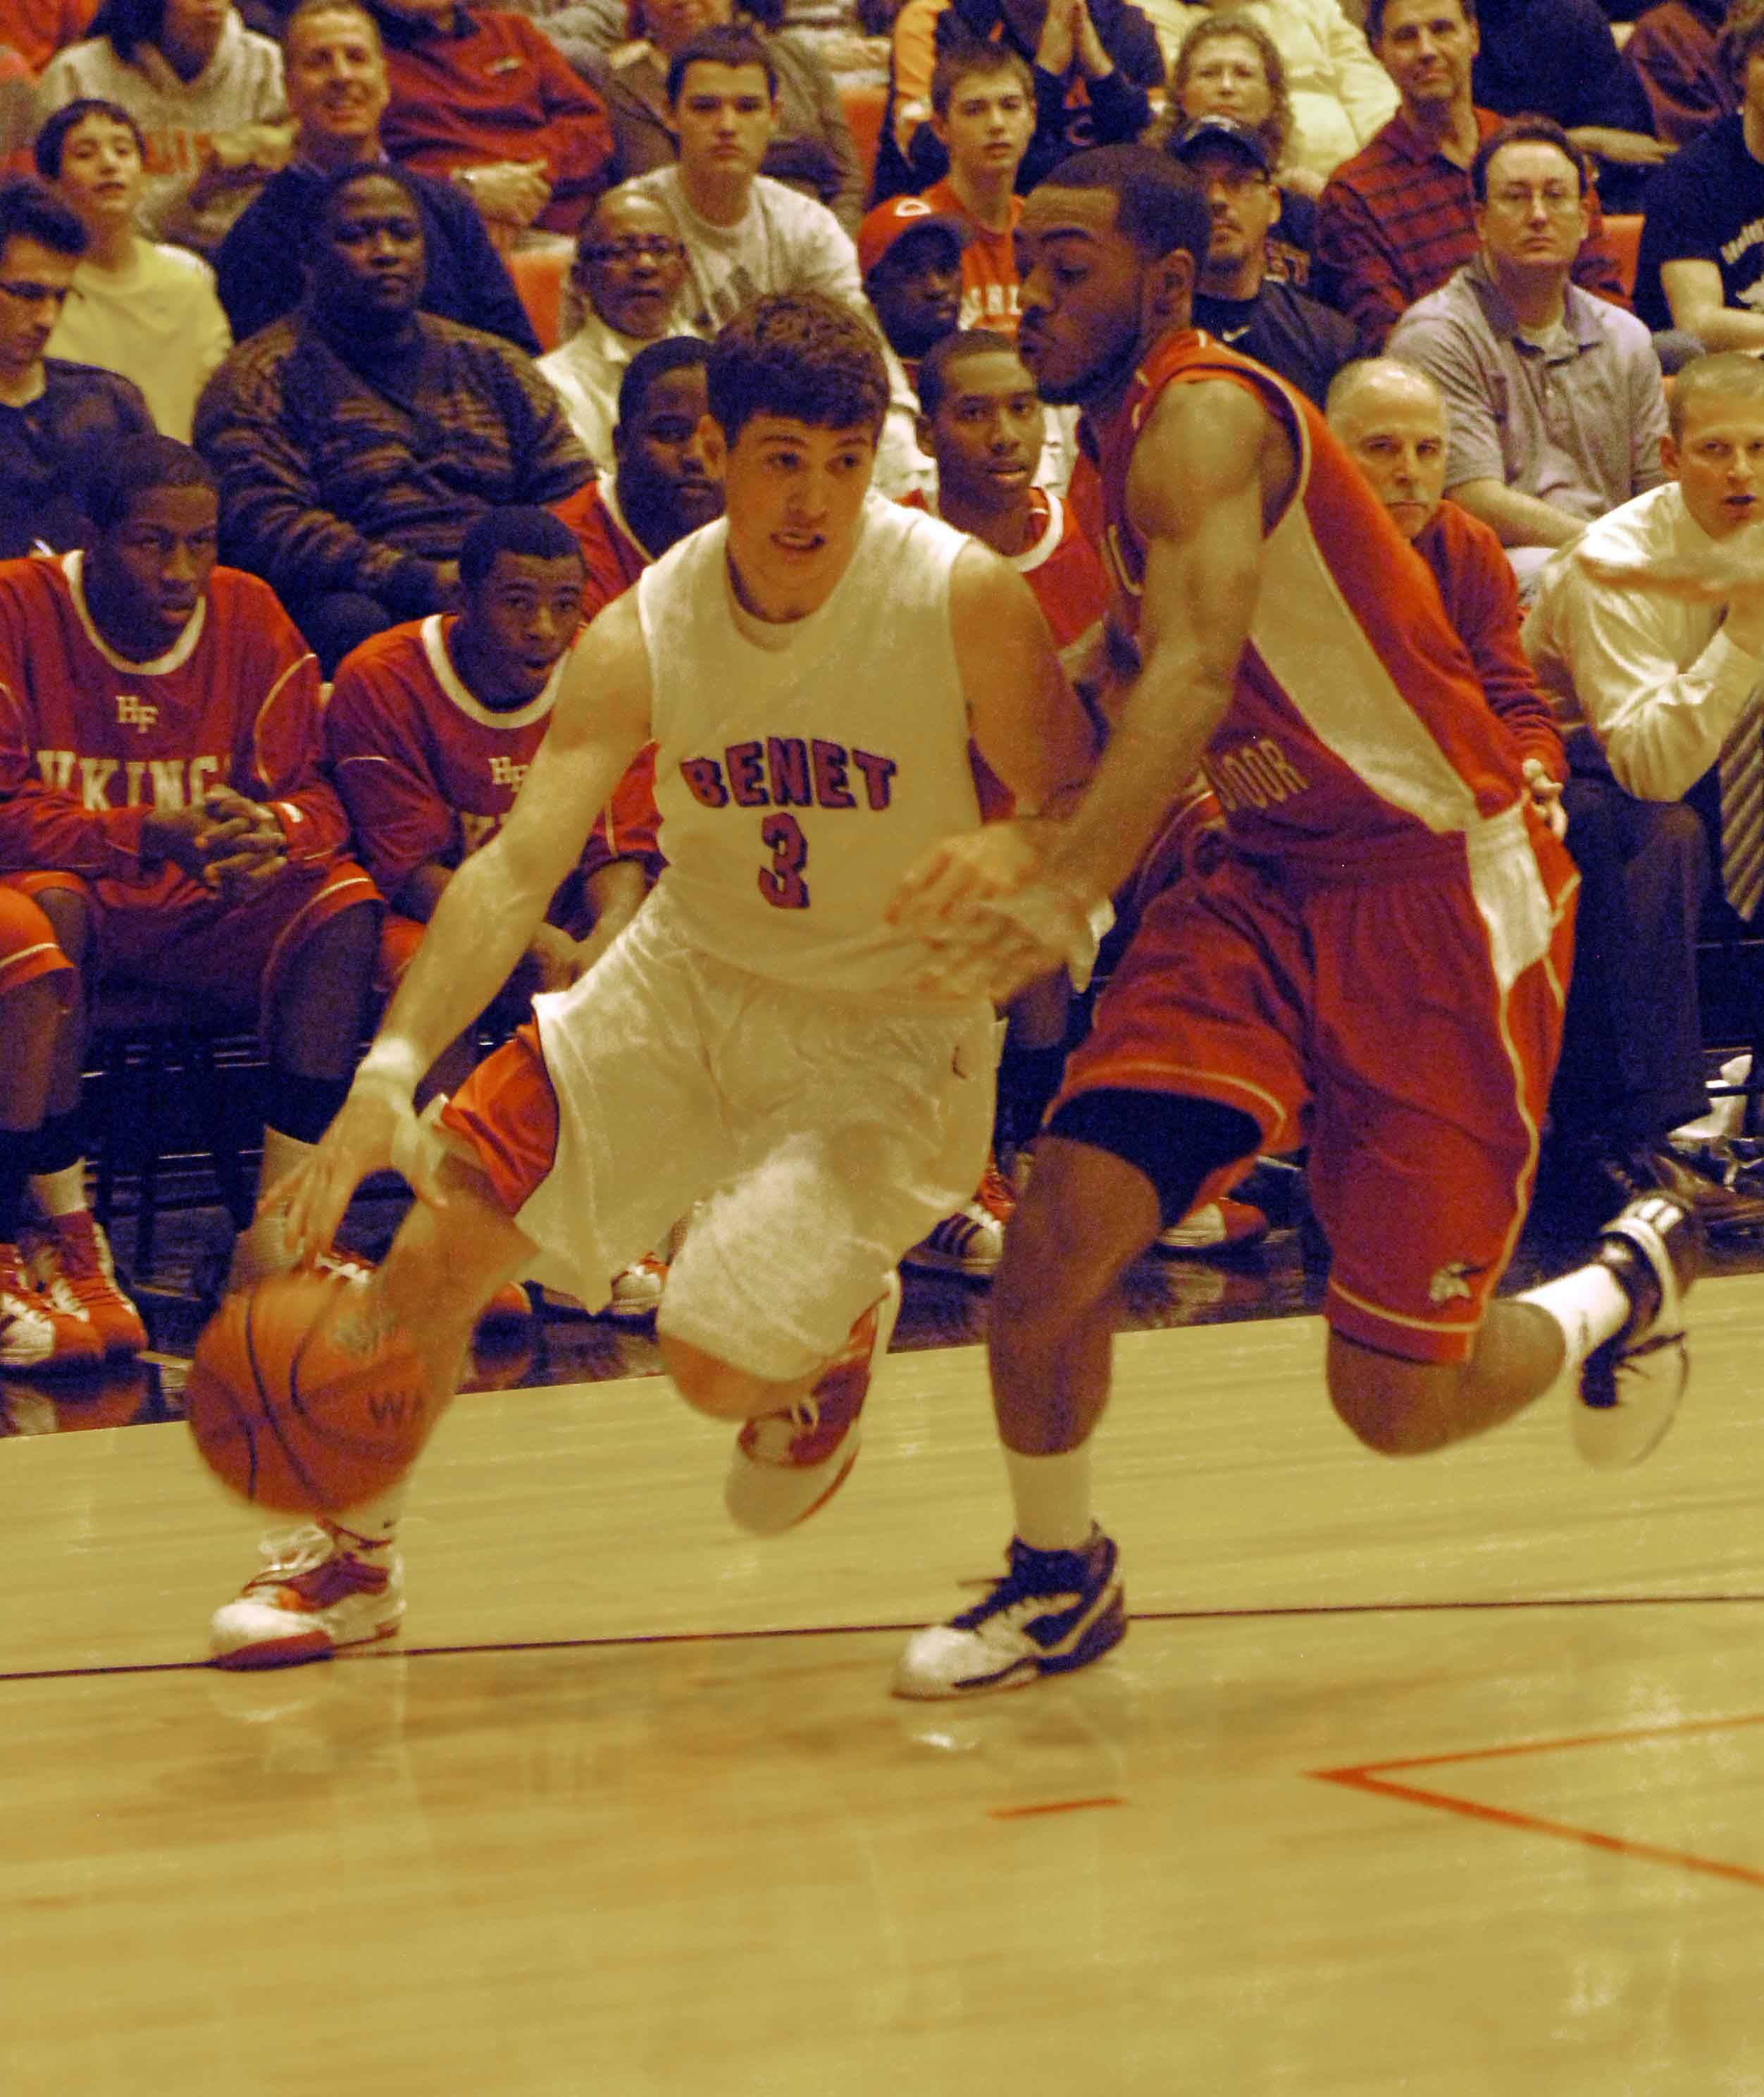 Dave Sobolewski moves the ball around Julian Lewis of Homewood-Flossmoor during the Benet vs. Homewood-Flossmoor game at Proviso West High School in Hillside Thursday.